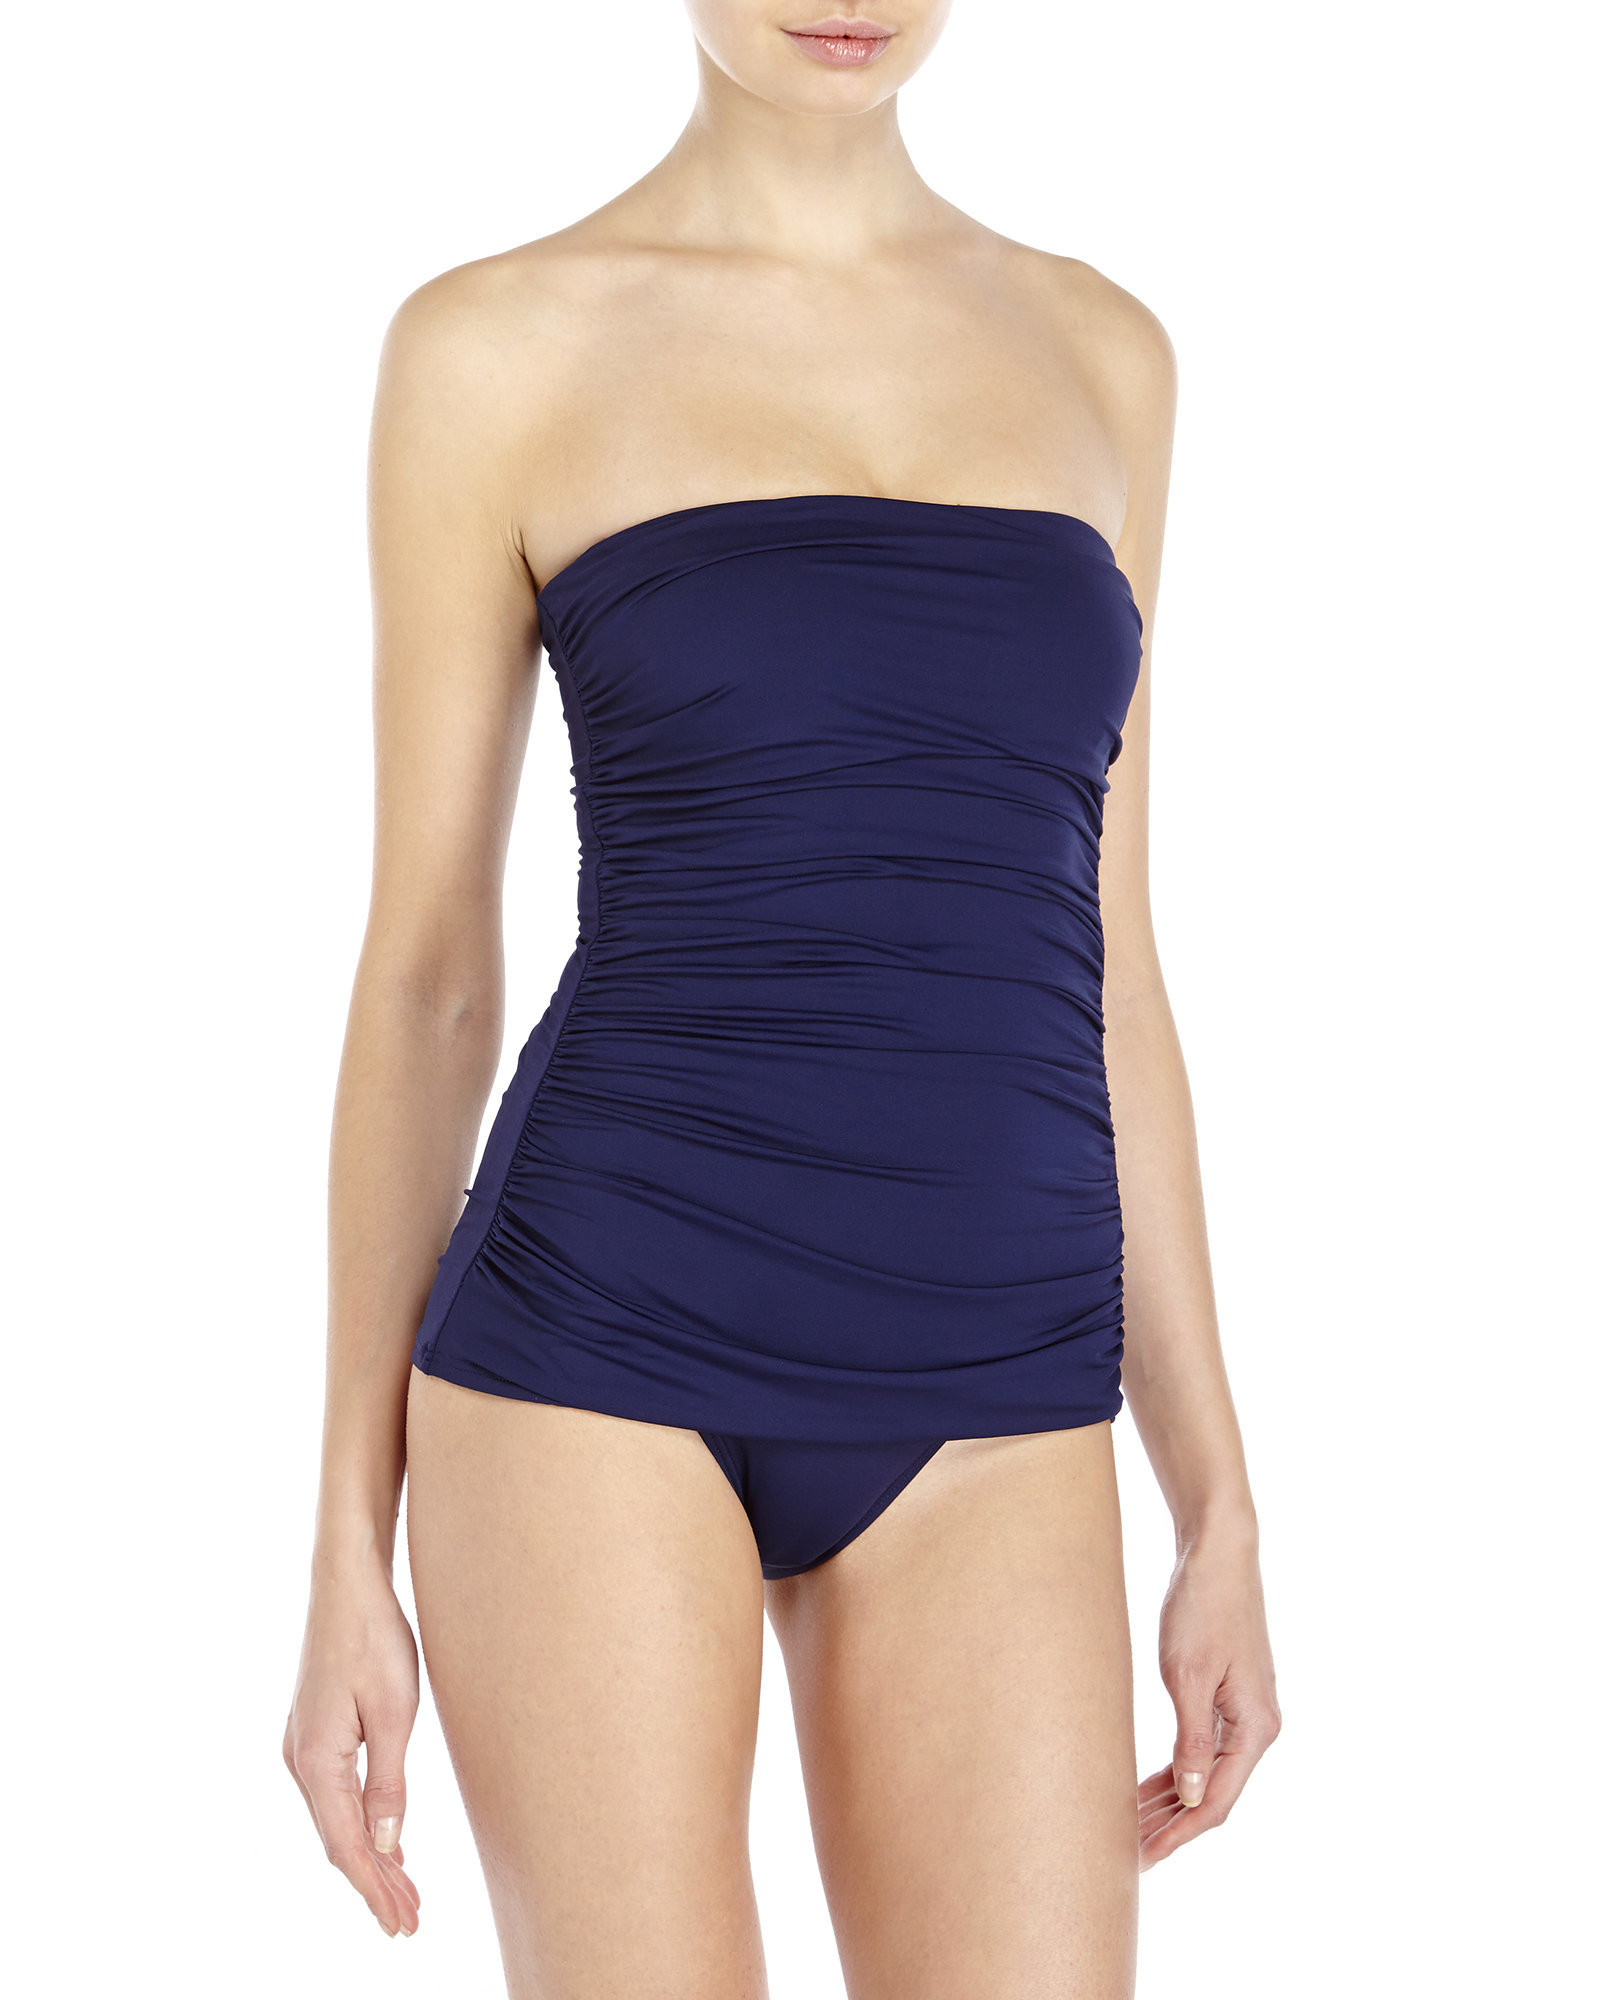 6ec834efb3535 Lyst - Ivanka Trump Bandeau Ruched One-Piece Swimsuit in Blue